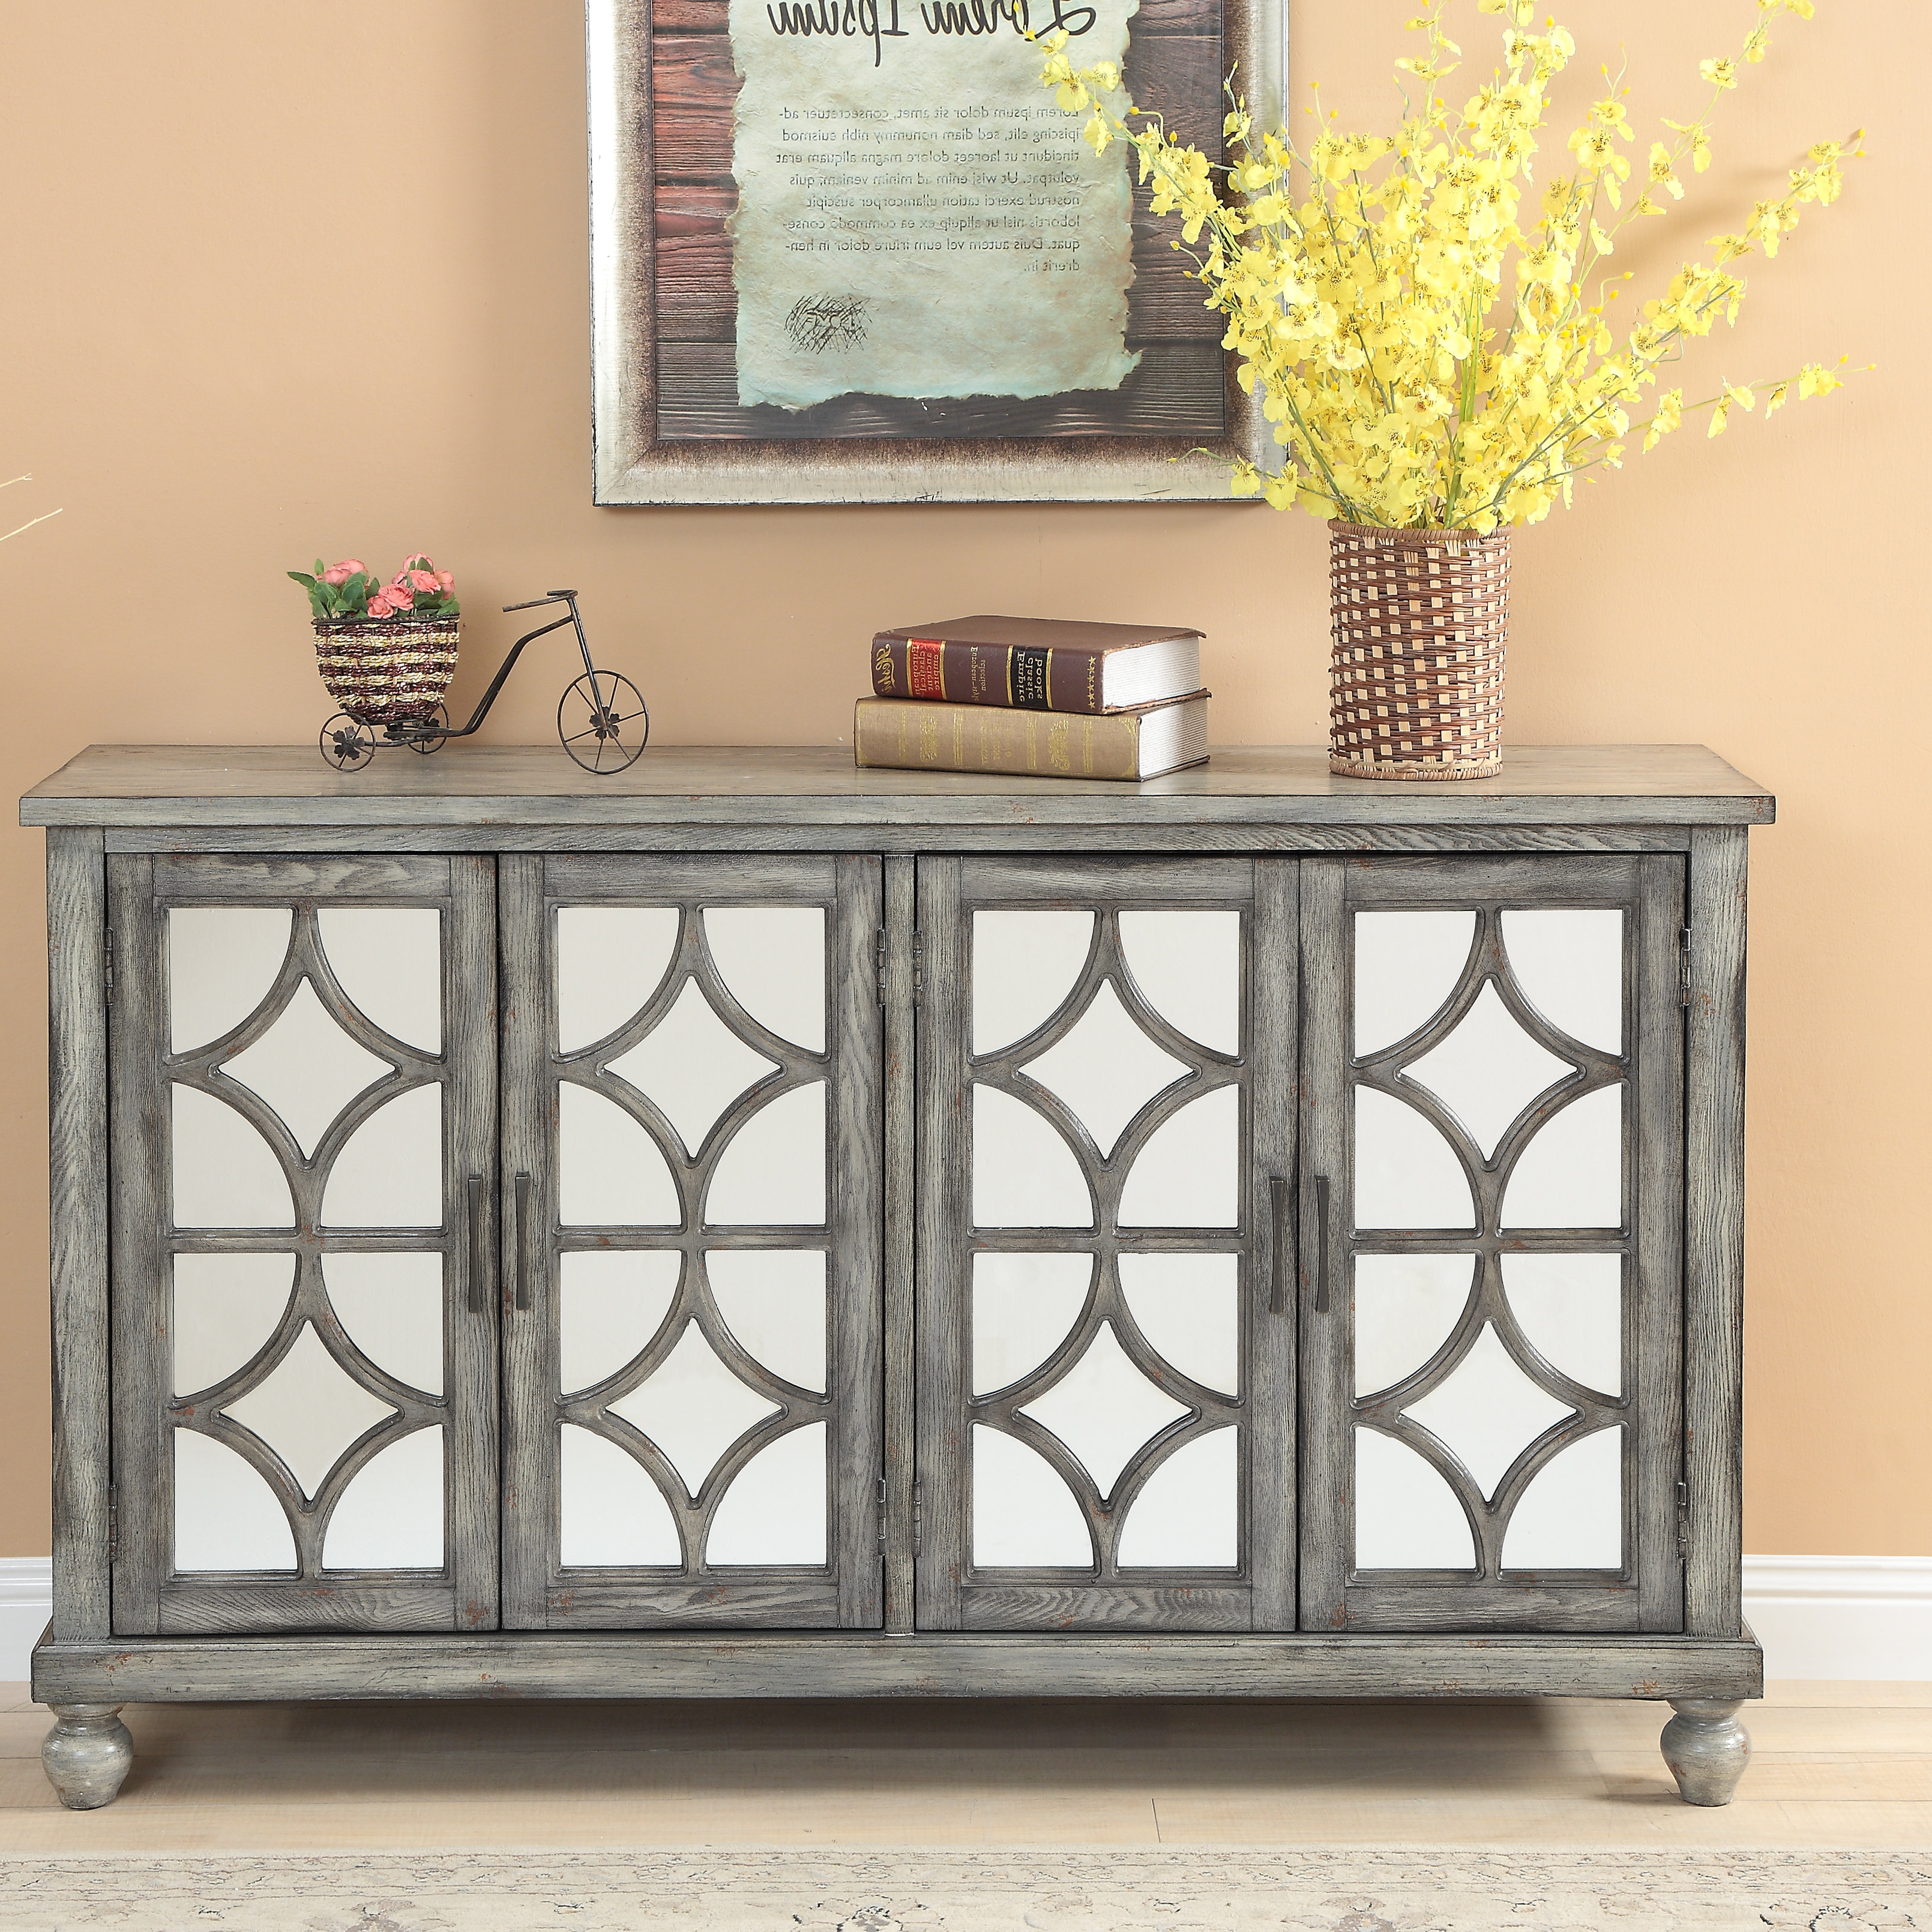 Farmhouse & Rustic One Allium Way Sideboards & Buffets Within 2019 Senda Credenzas (View 5 of 20)